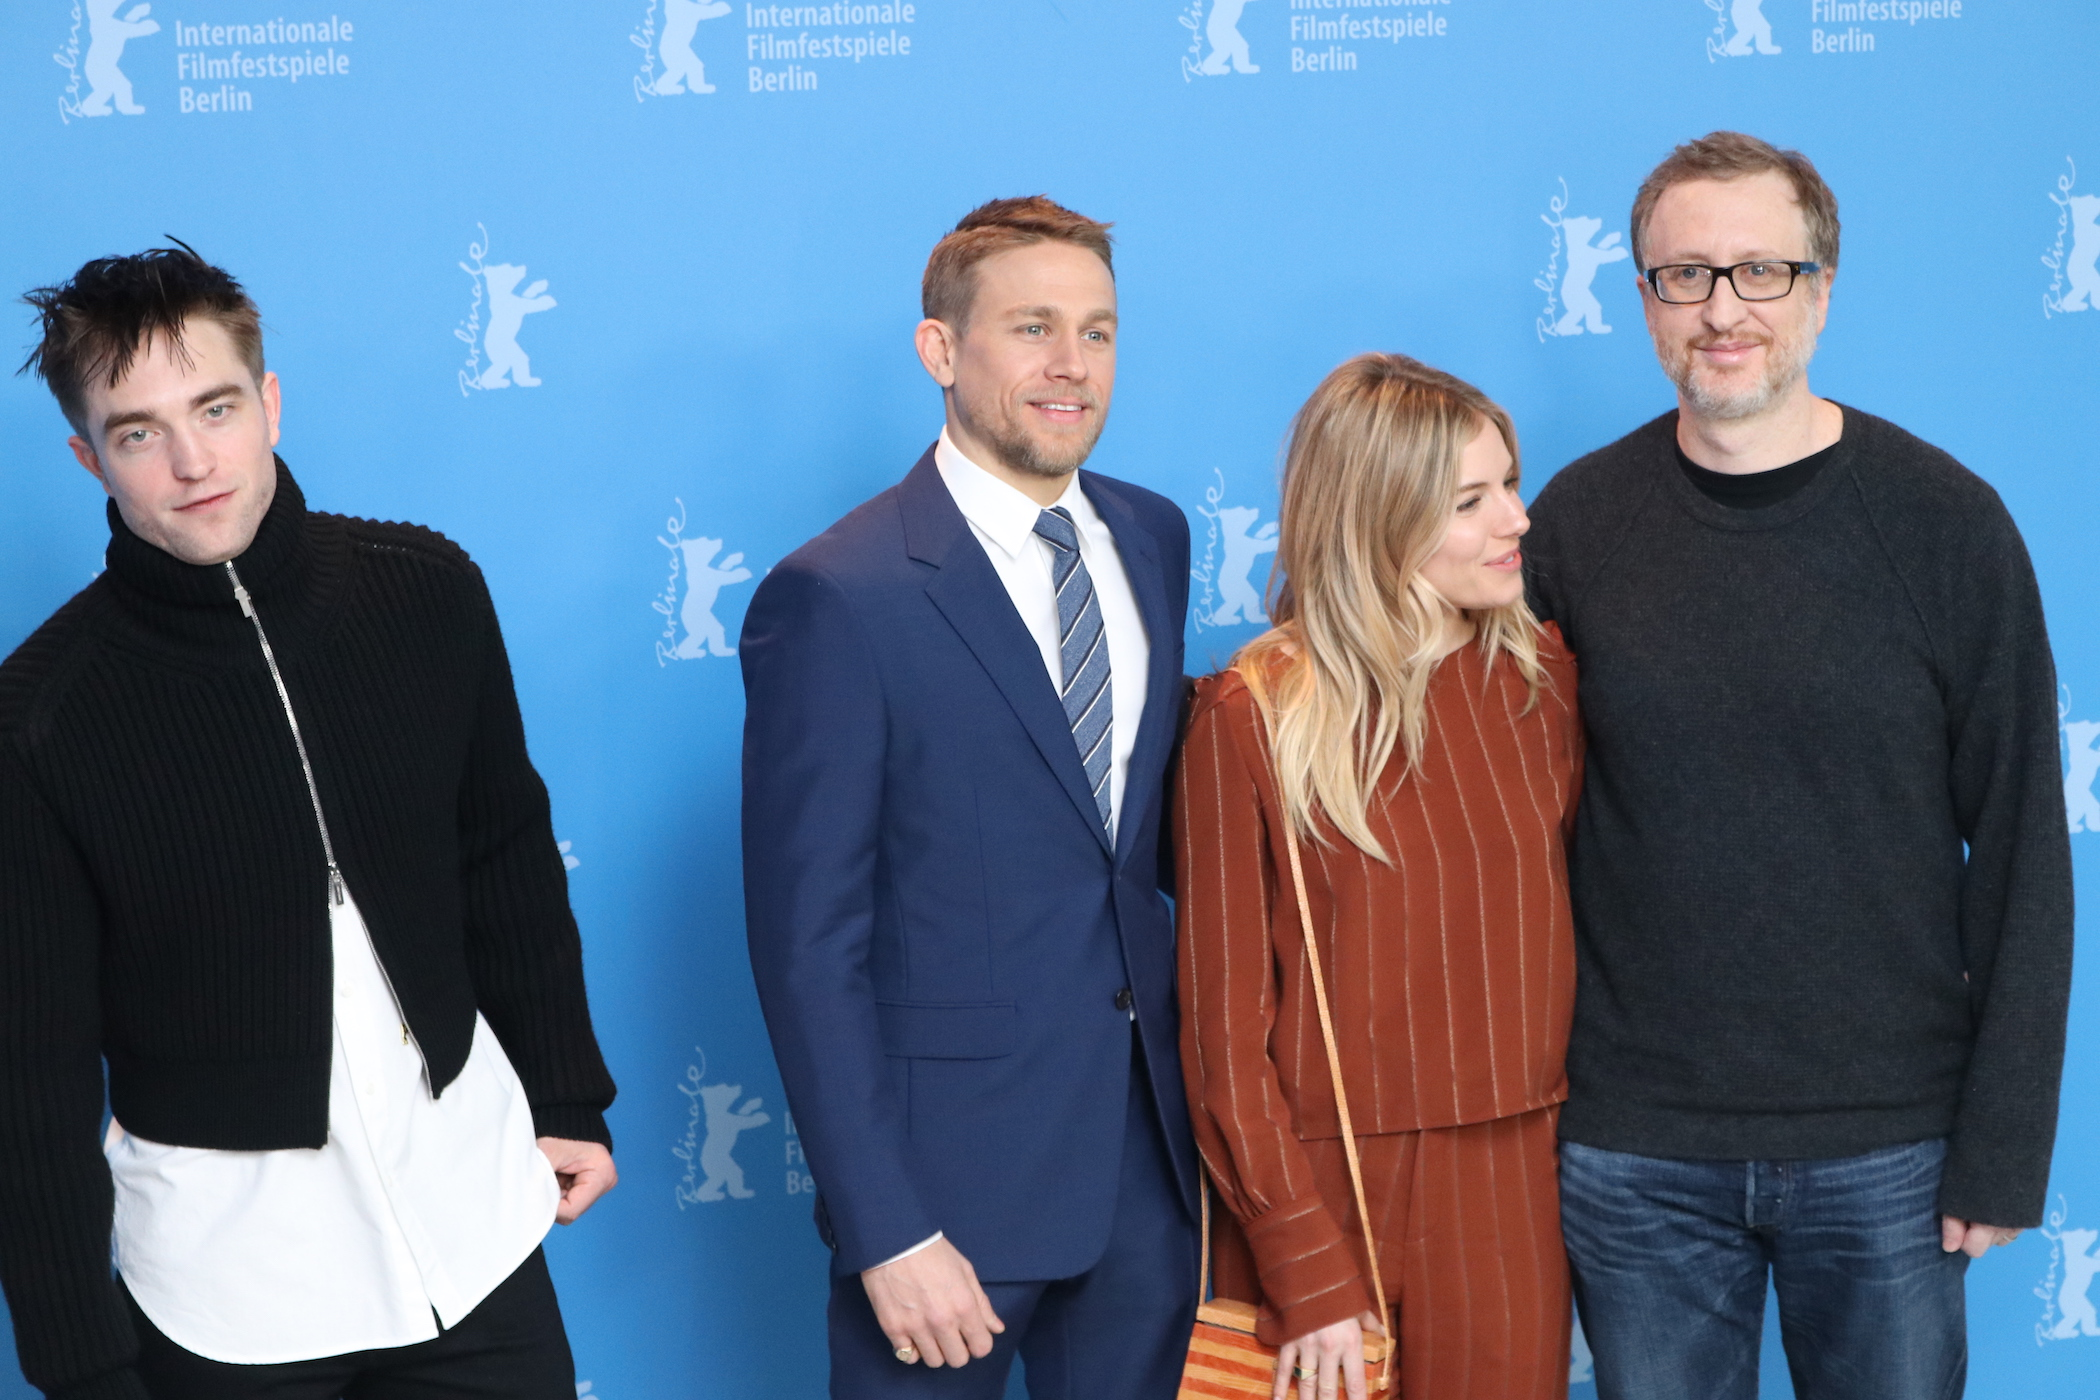 Berlino 2017: Robert Pattinson, Sienna Miller Charlie Hunnam e James Gray al photocall di Z - la città perduta